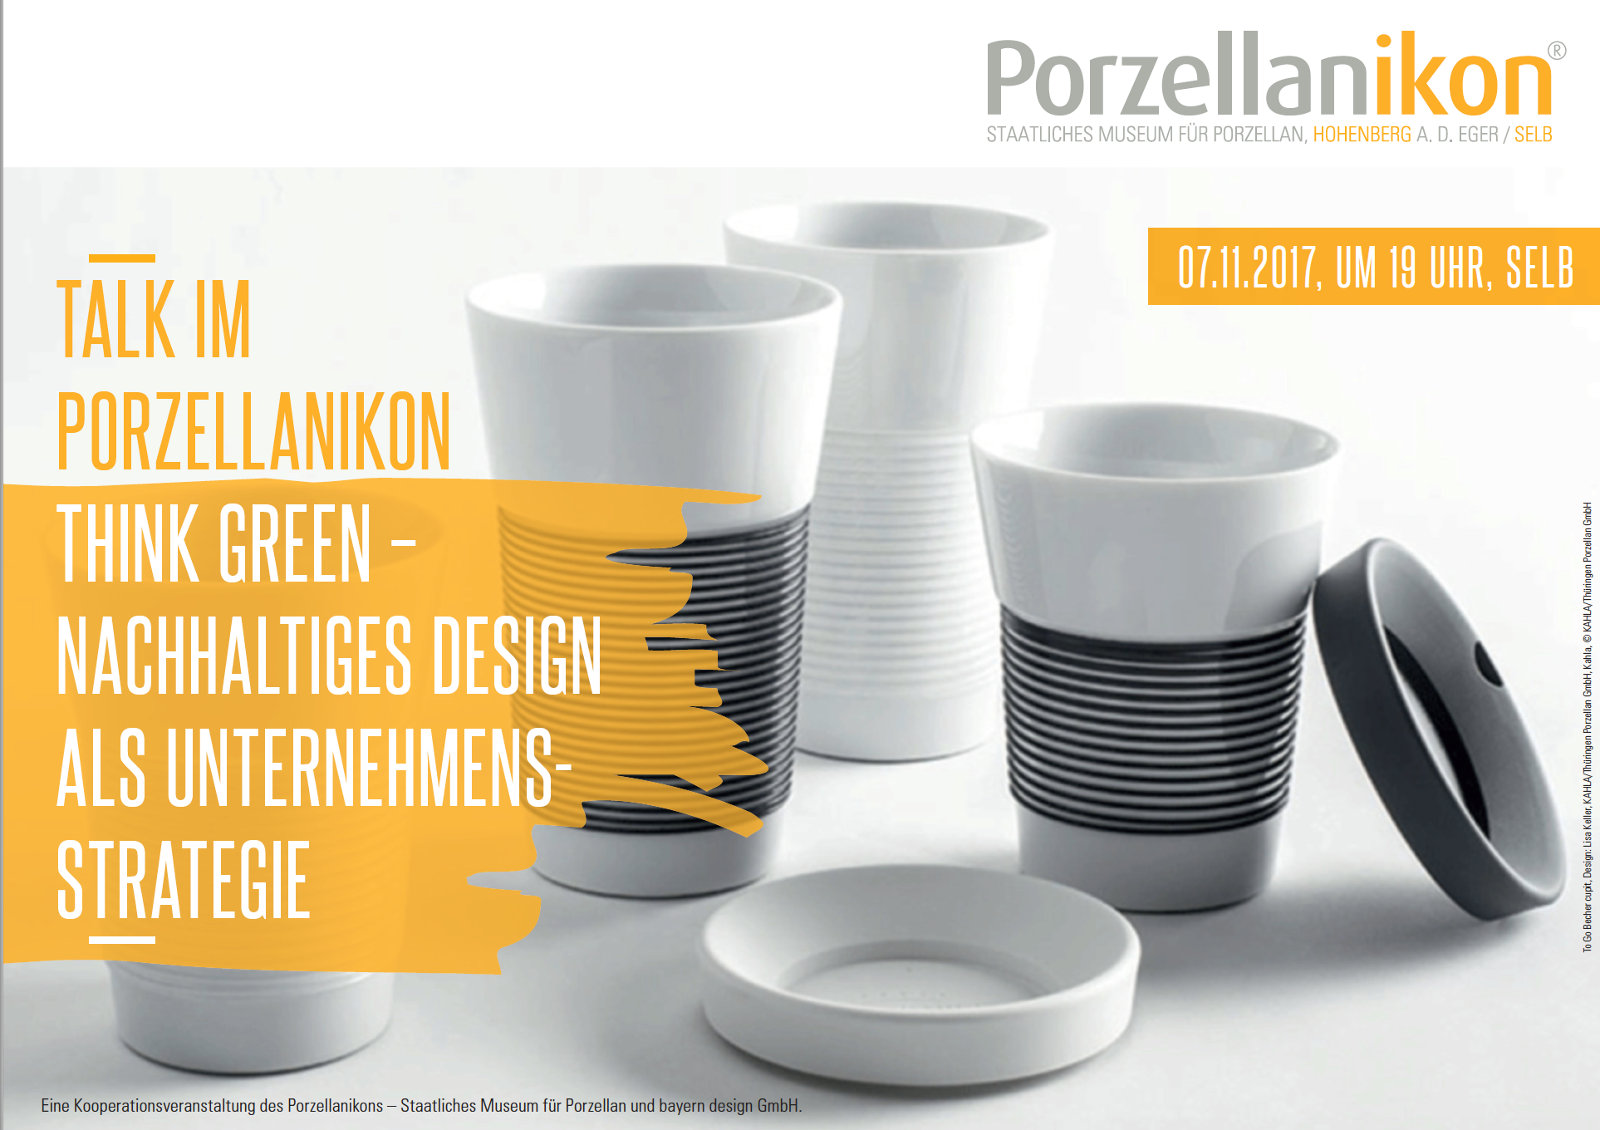 Talk im Porzellanikon - Think Green